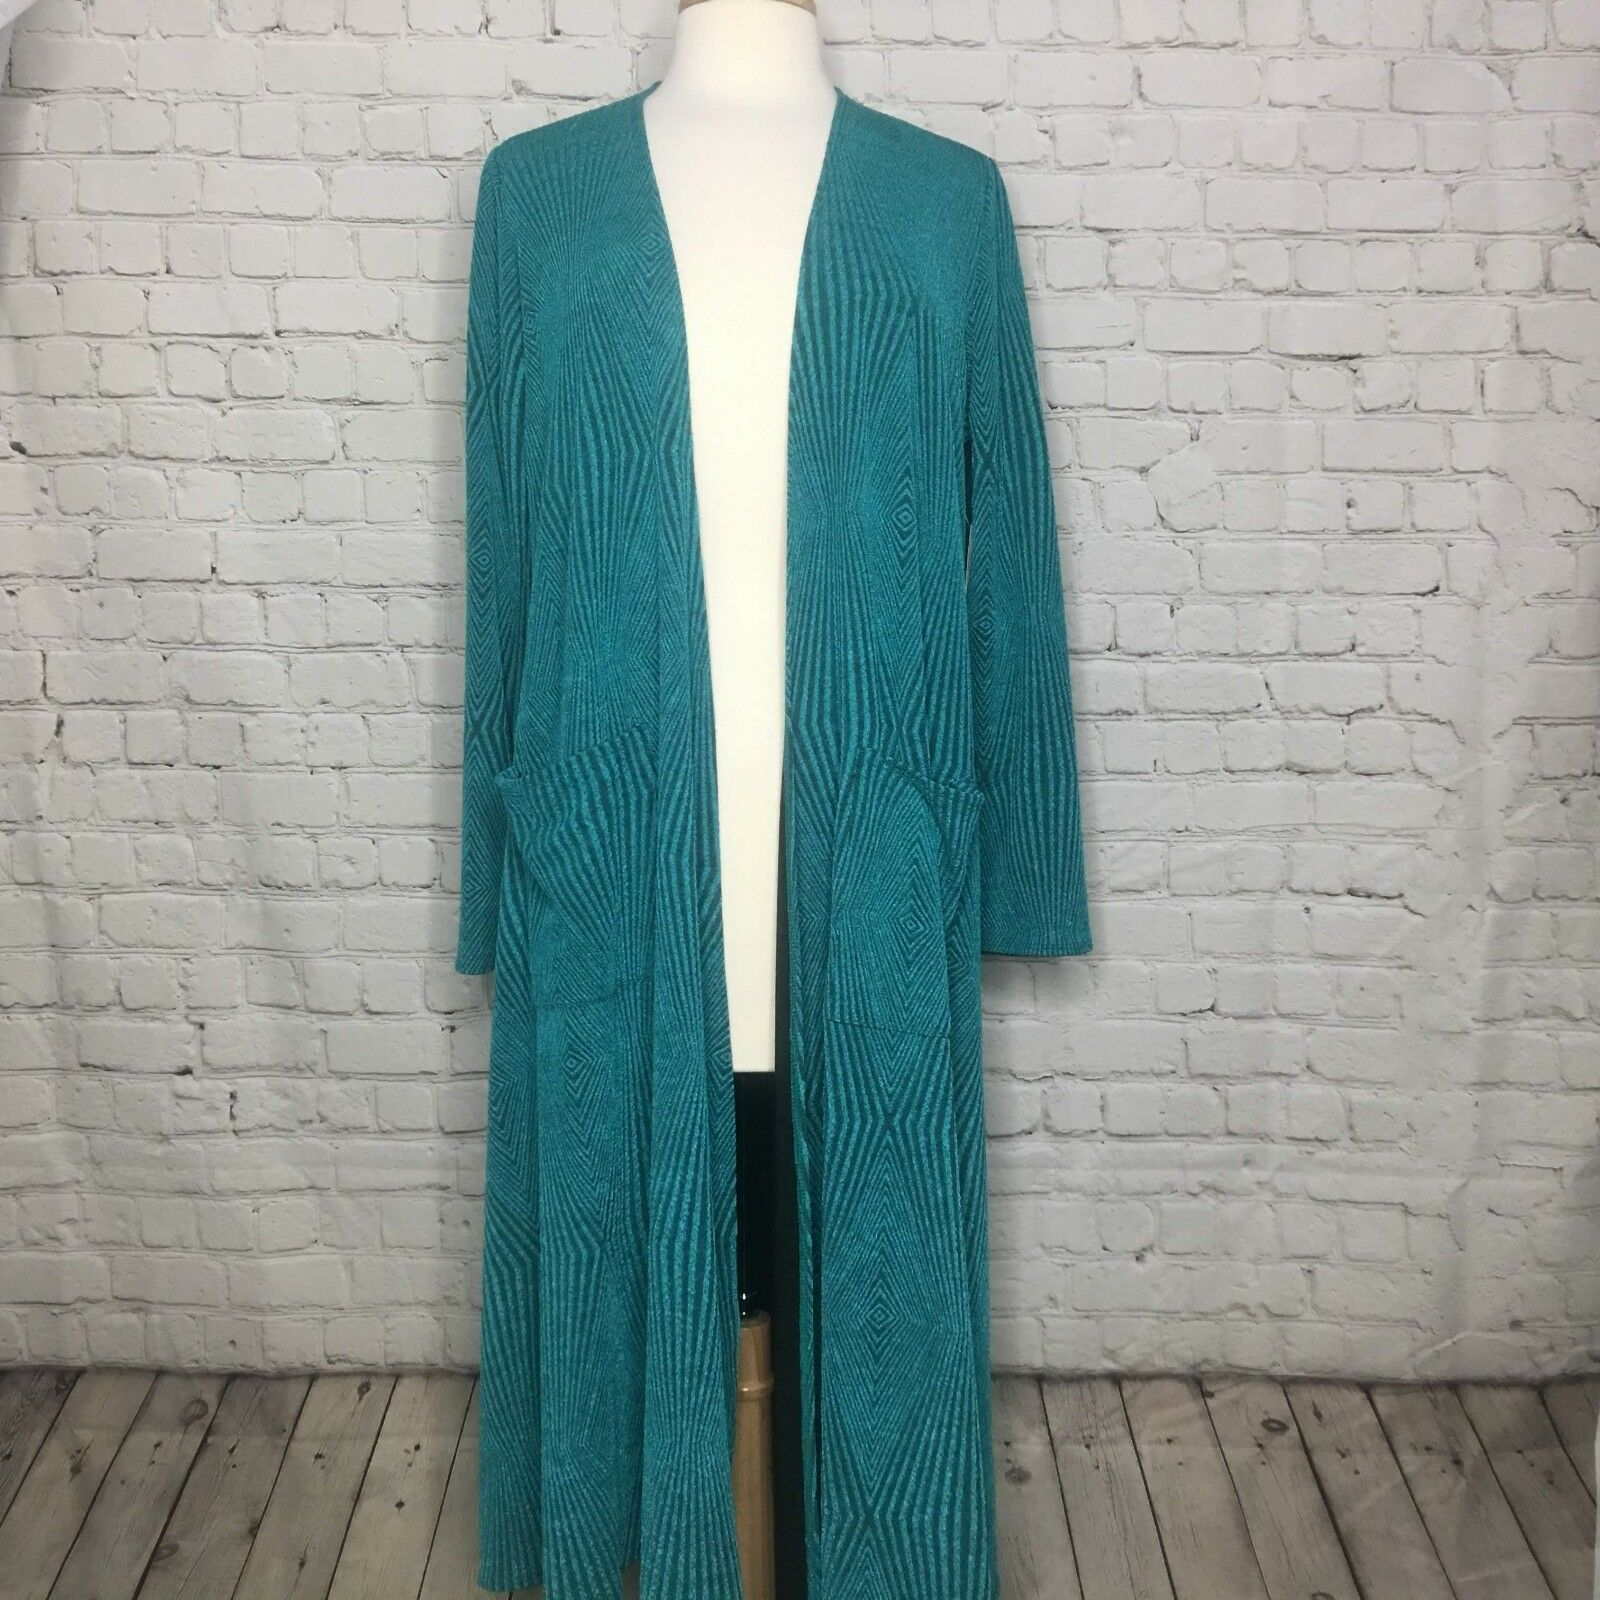 Lularoe Womens Sarah Duster Cardigan Teal S Discounted because of small defect